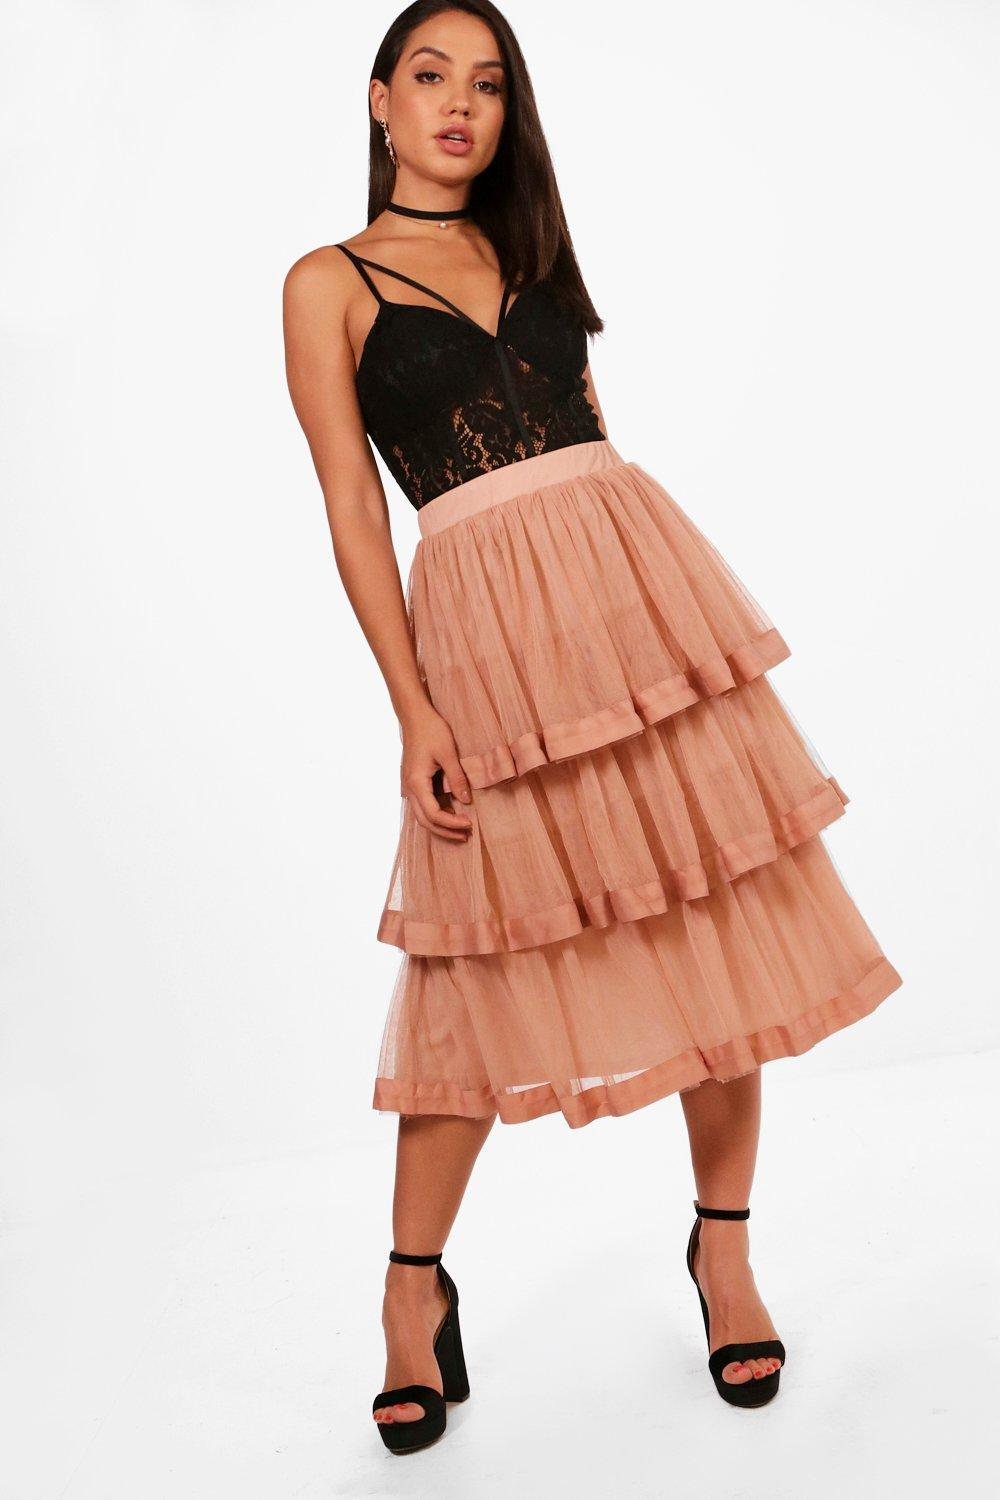 3a62f3ba2b55fa Gallery. Previously sold at: Boohoo · Women's Midi Skirts Women's Tulle  Skirts